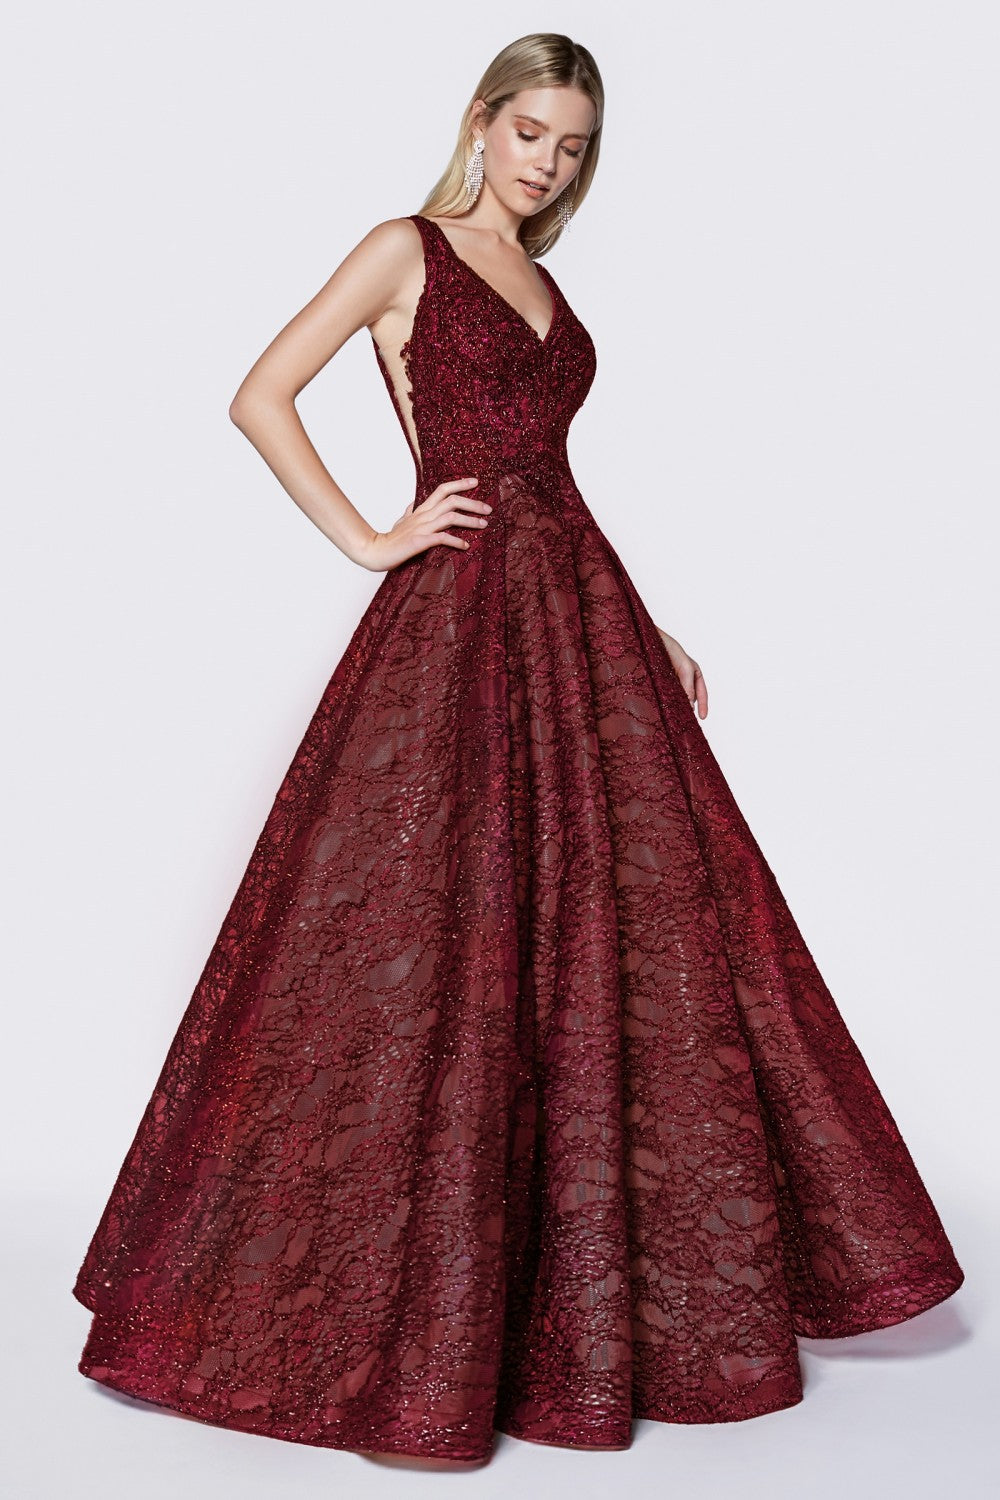 Lace Ball Gown With Glitter Accents, Illusion Side Panels And Deep V-Neckline